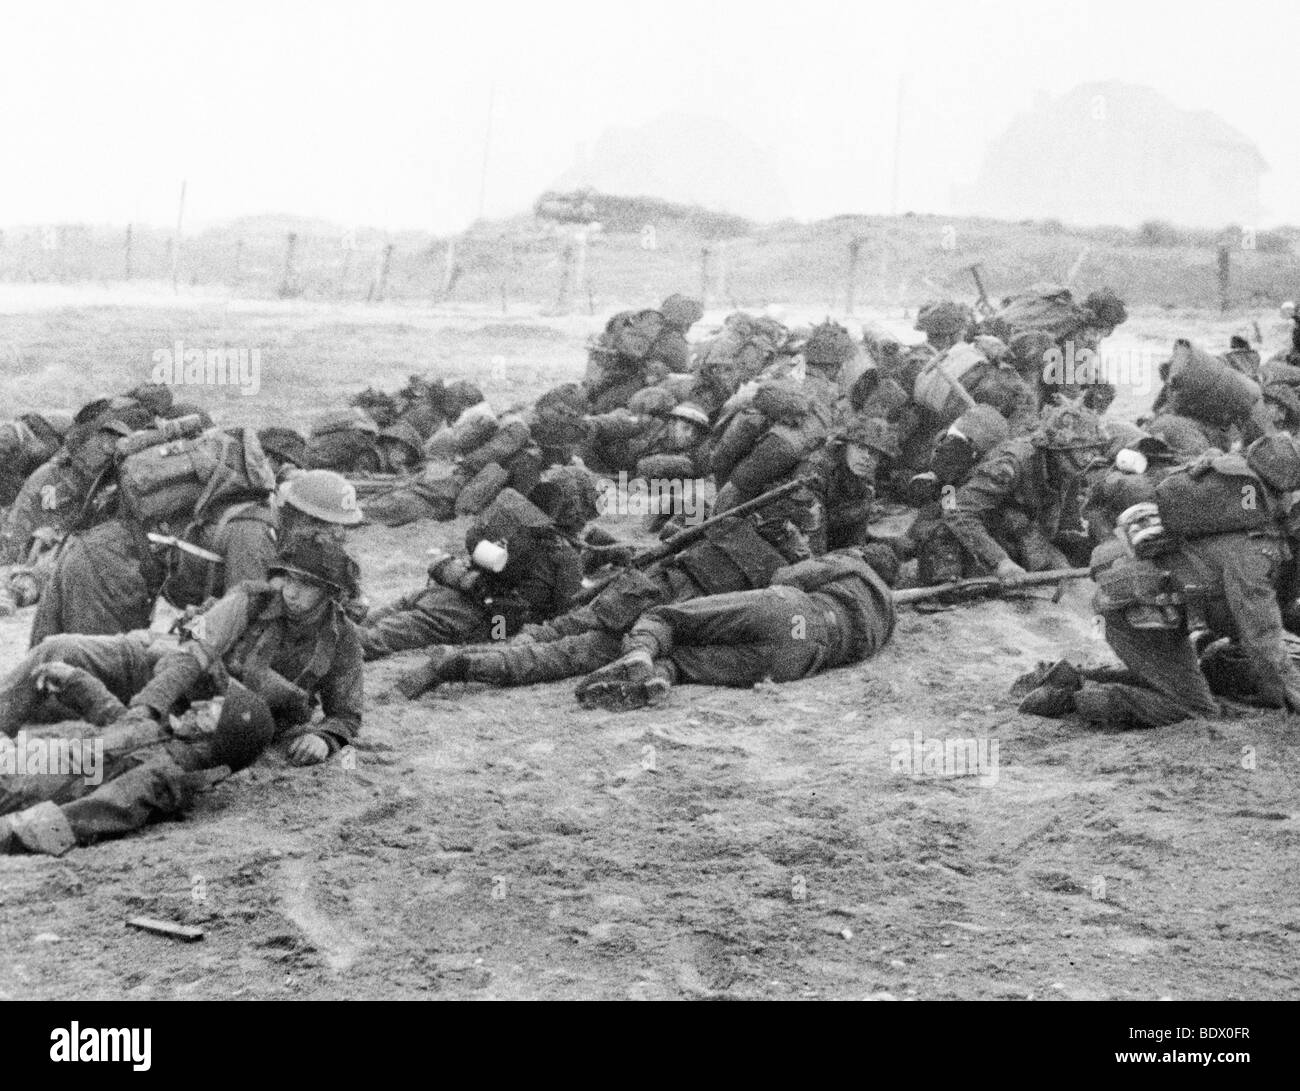 6 JUNE 1944 - British troops of the Suffolk Regiment under heavy fire at Coleville end of SWORD beach  - see Description - Stock Image